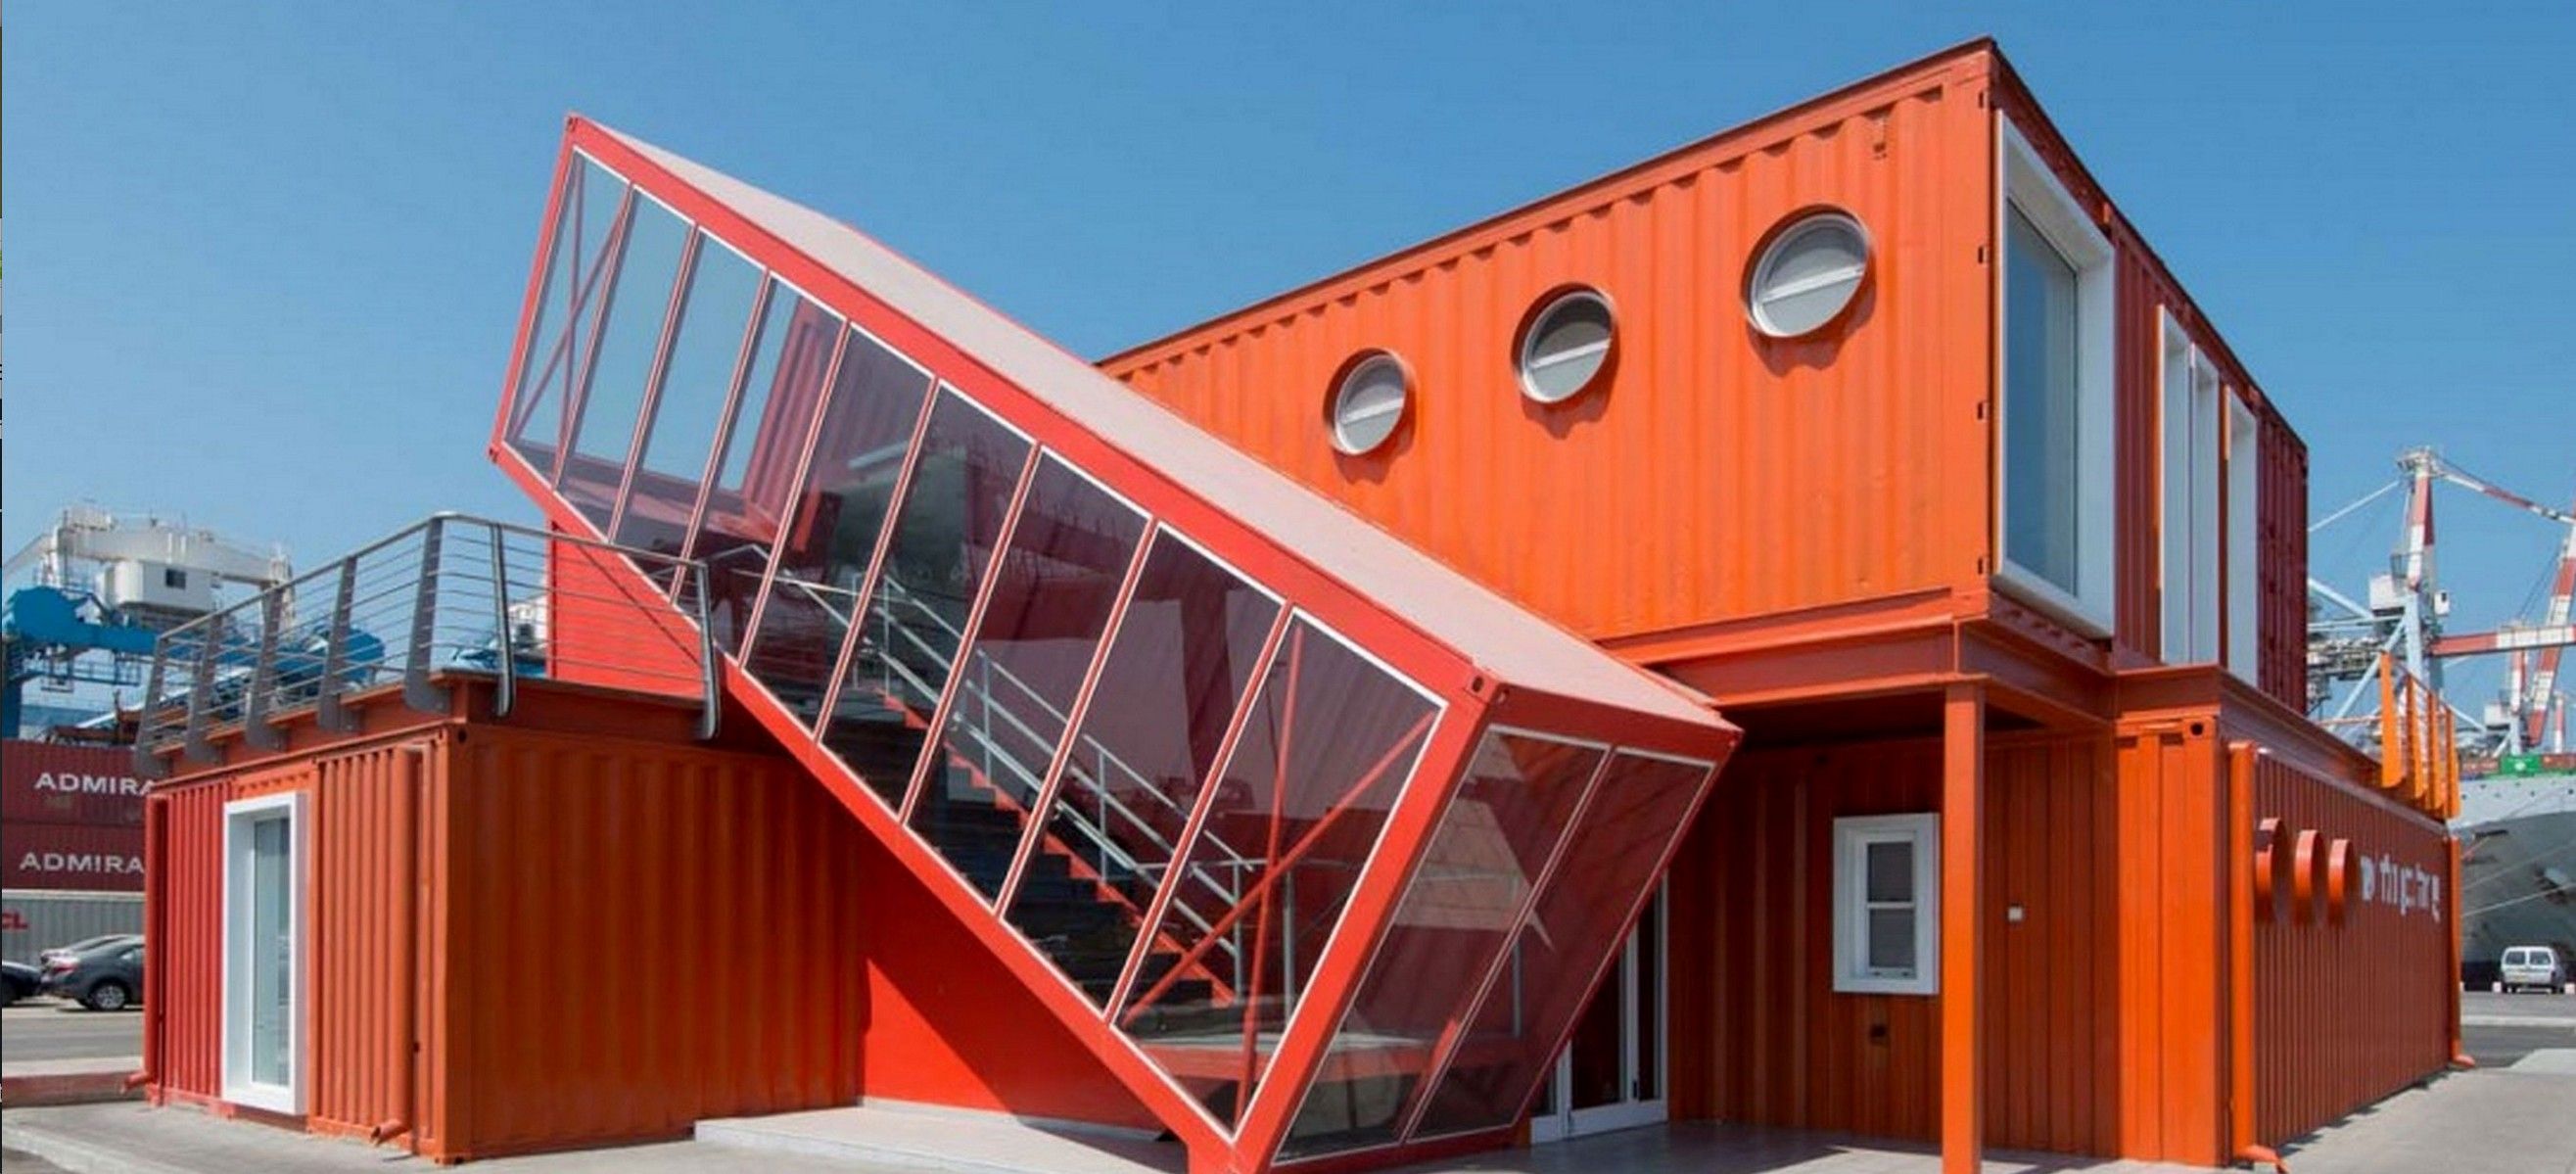 top 15 shipping container homes in the us - shipping container